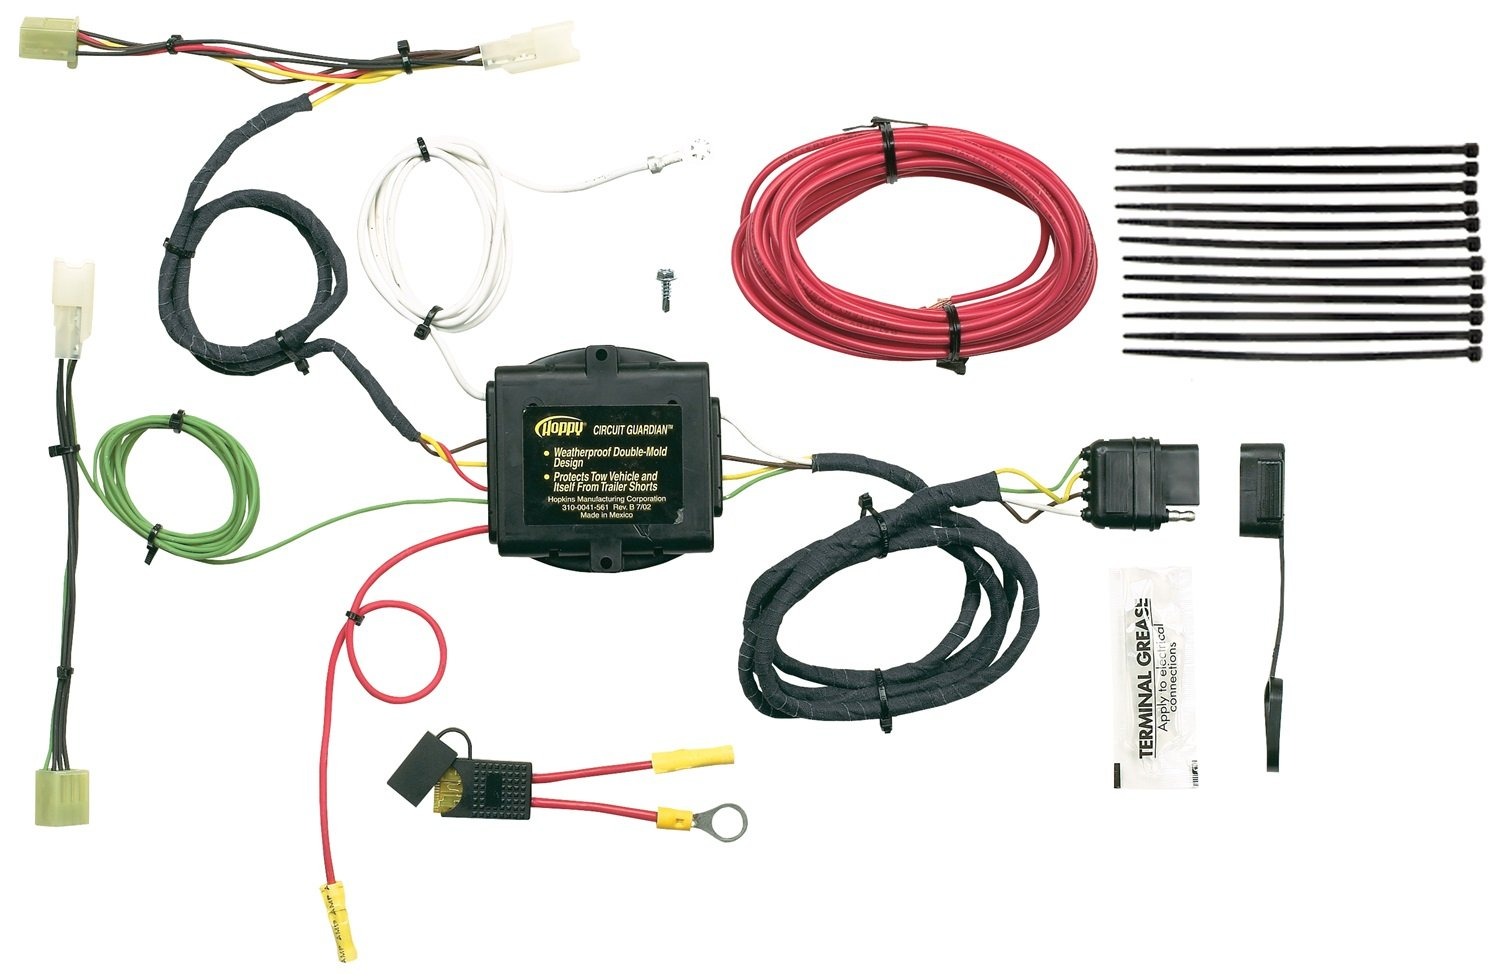 7191%2Bhe2xFL._SL1500_ amazon com hopkins 43425 plug in simple vehicle wiring kit  at readyjetset.co